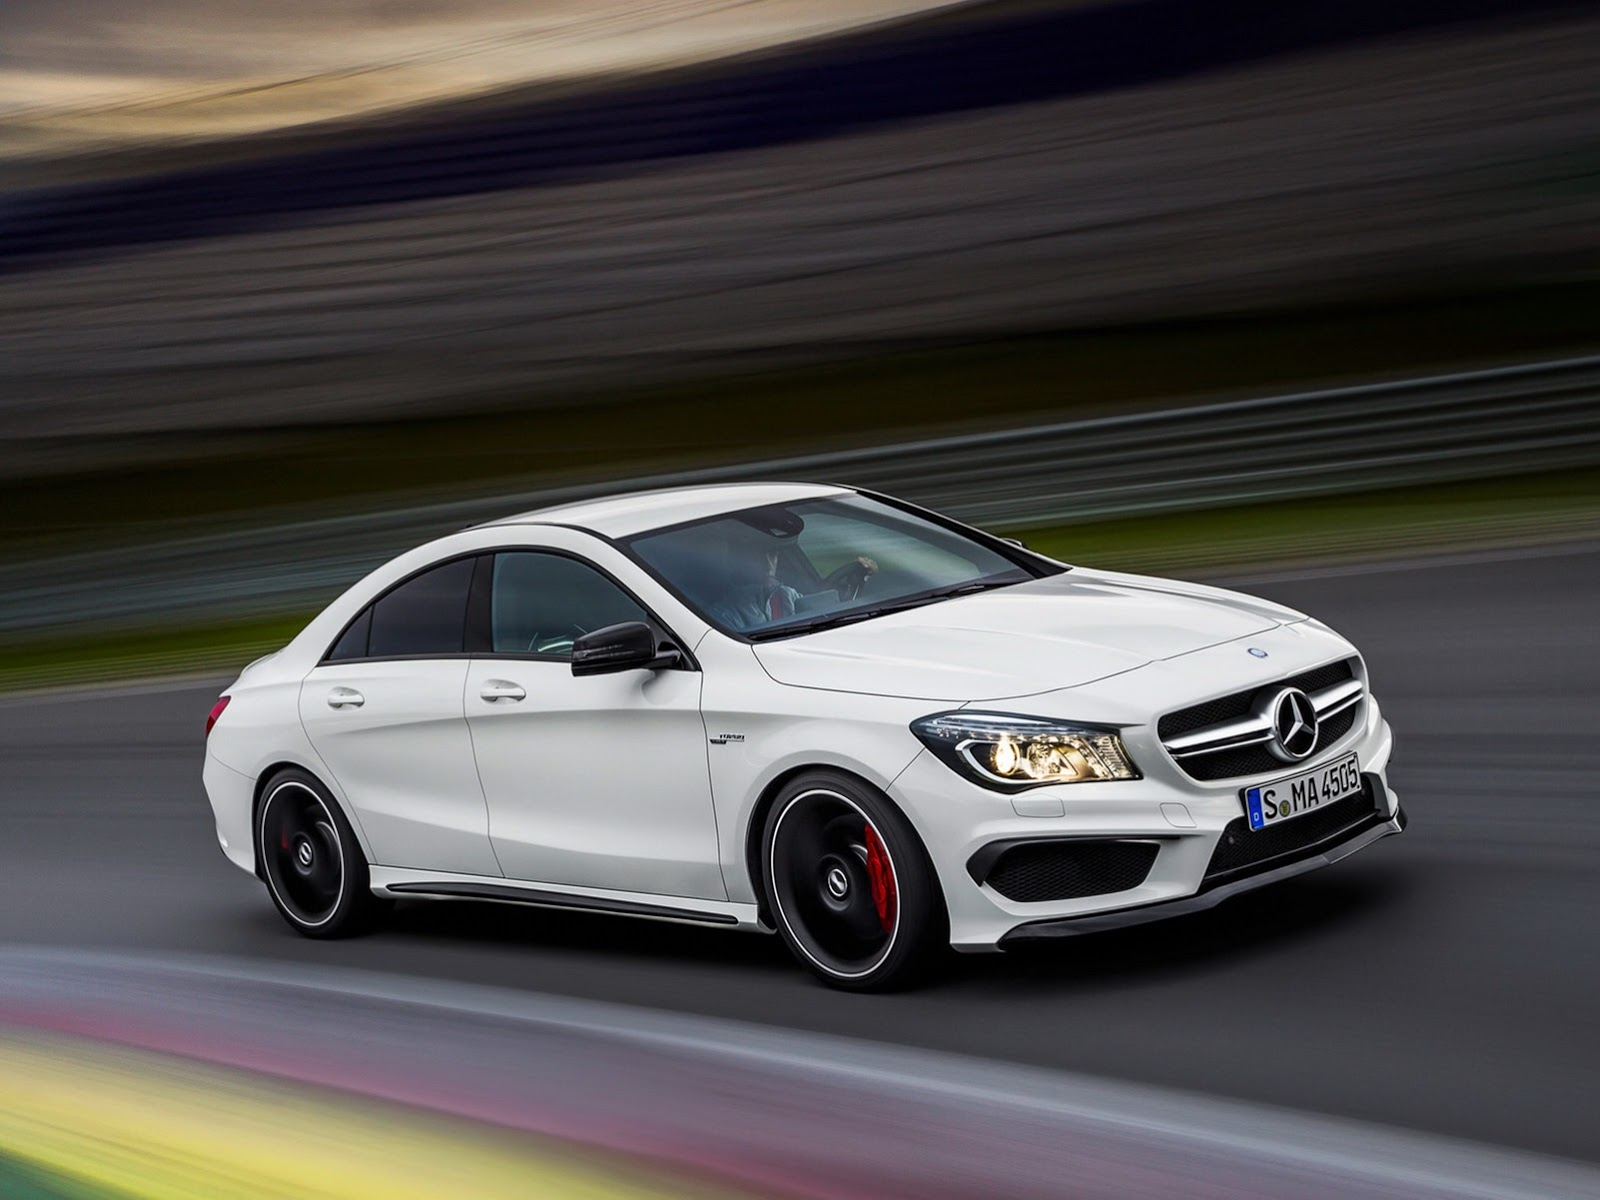 Mercedes benz cla 45 amg images leaked for Benz mercedes cla